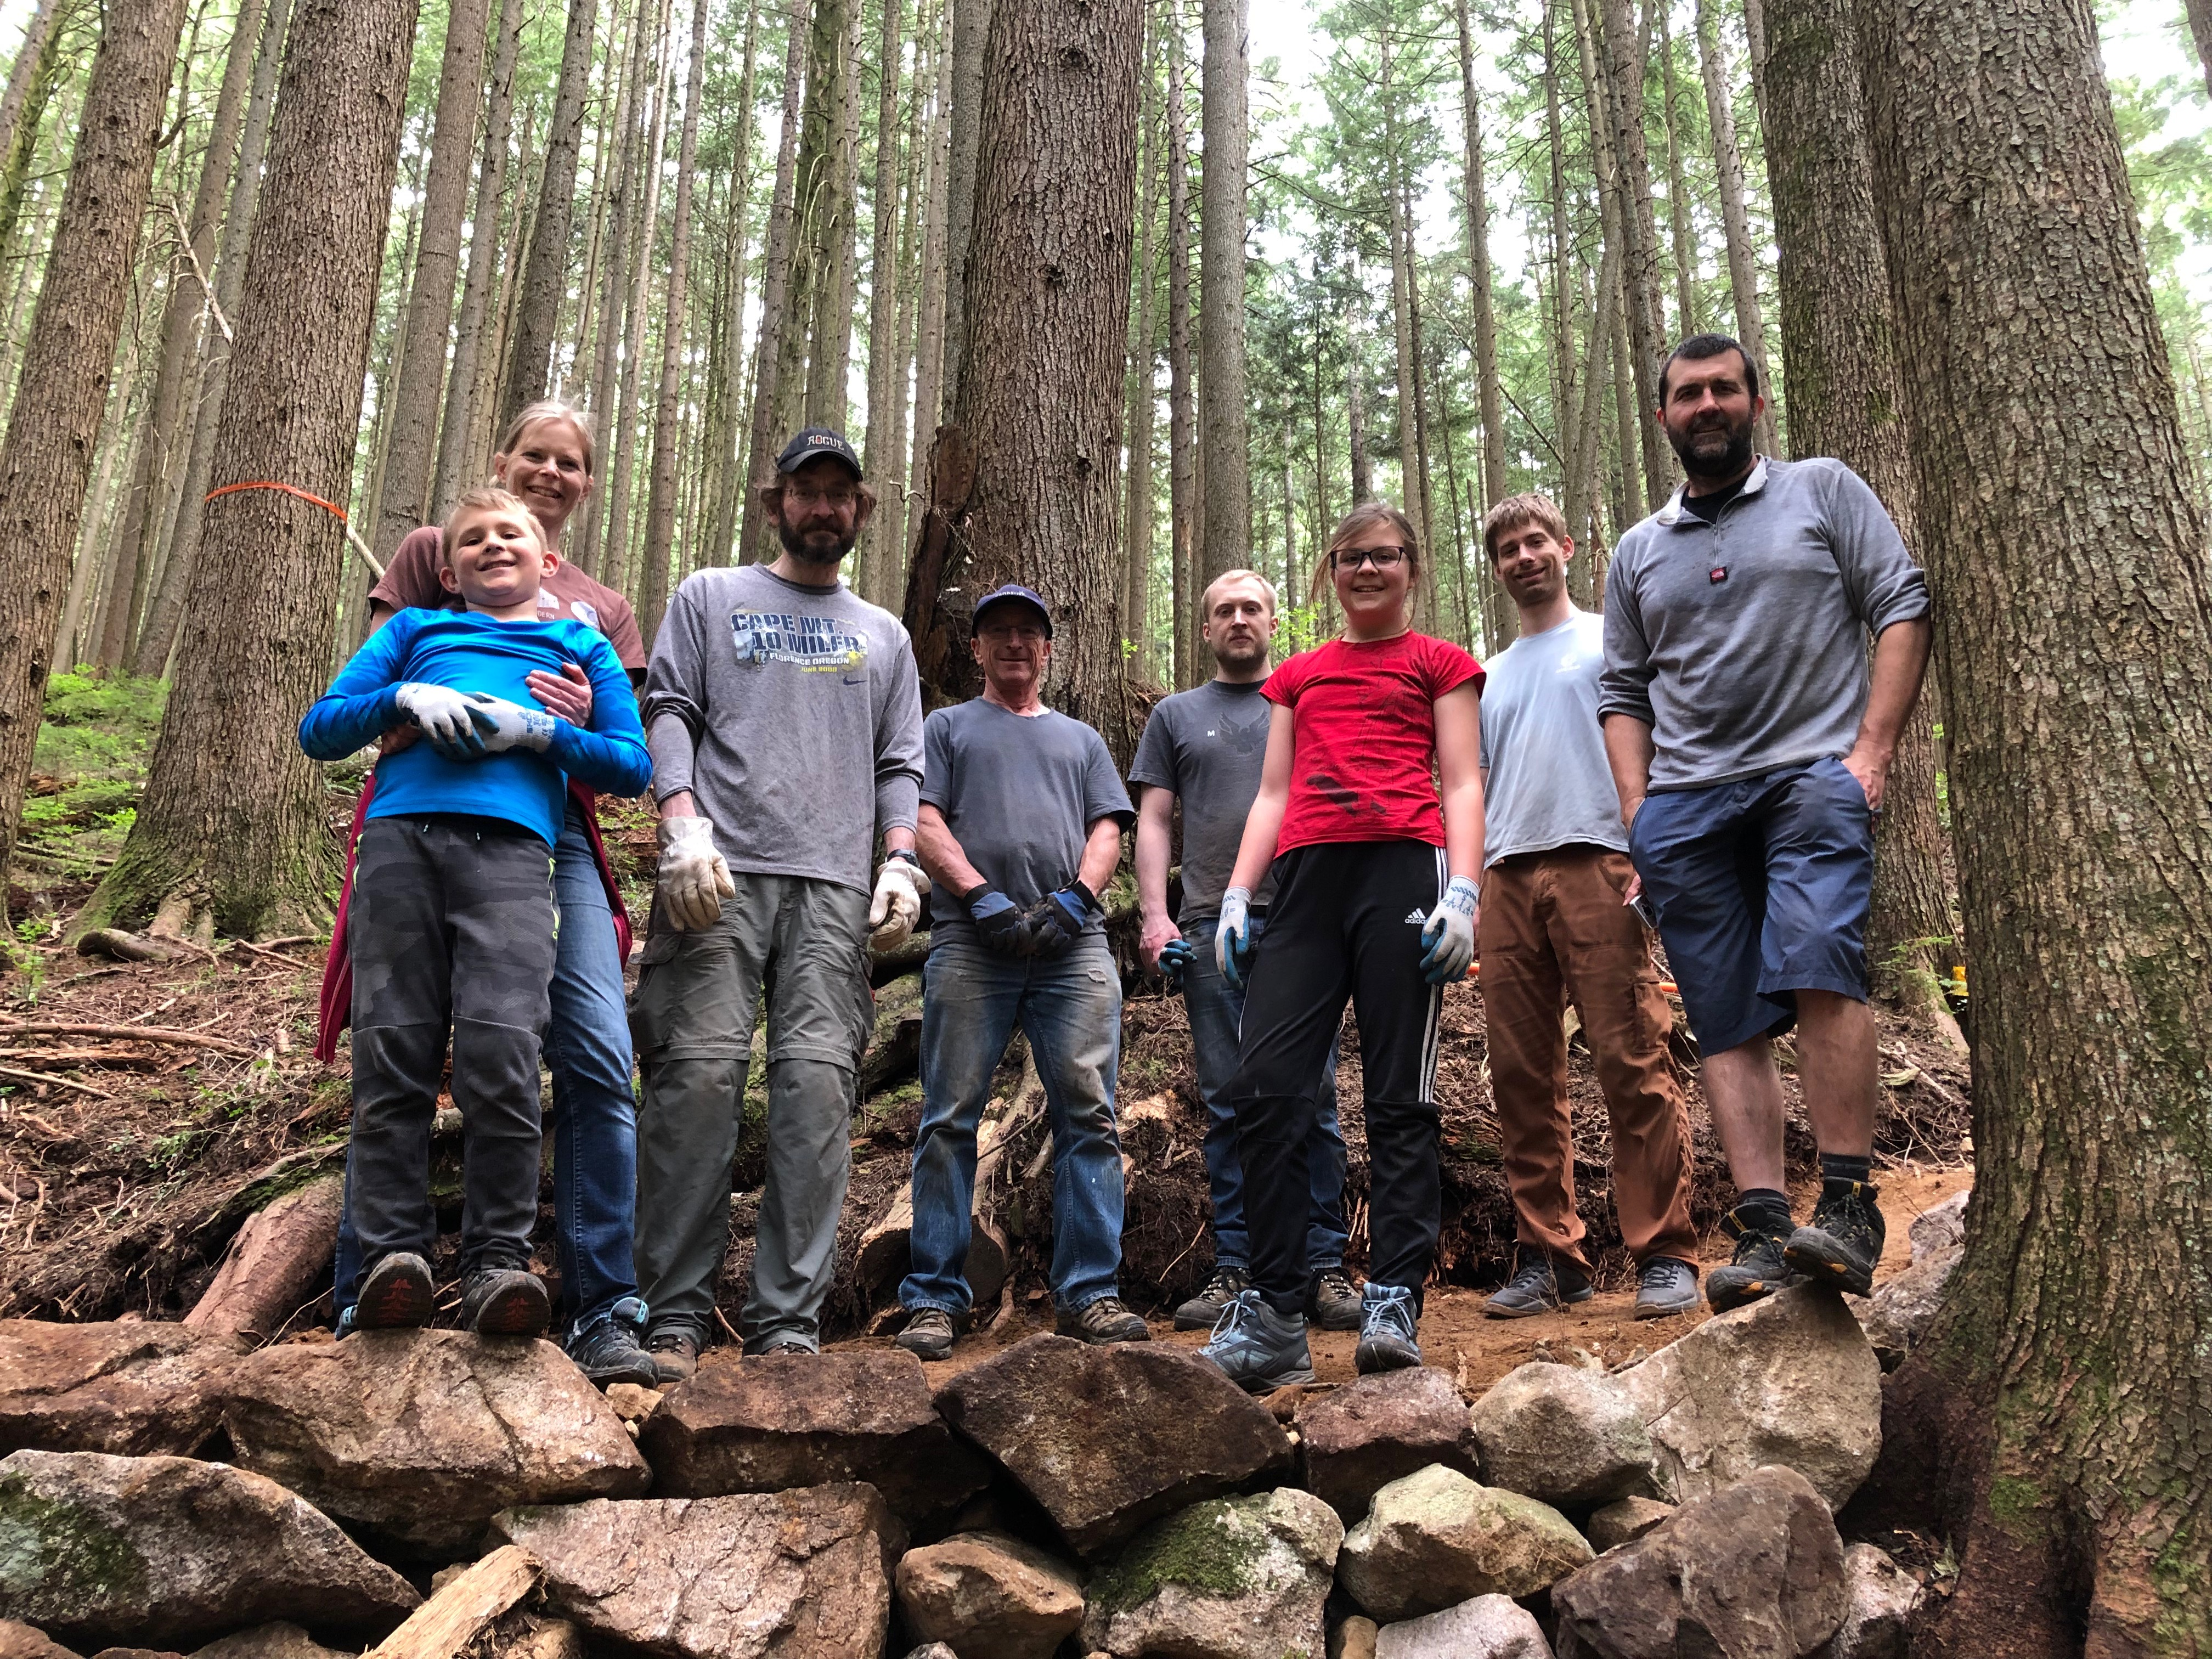 another group of volunteers who helped build the trail, standing on top of a rock retaining wall.